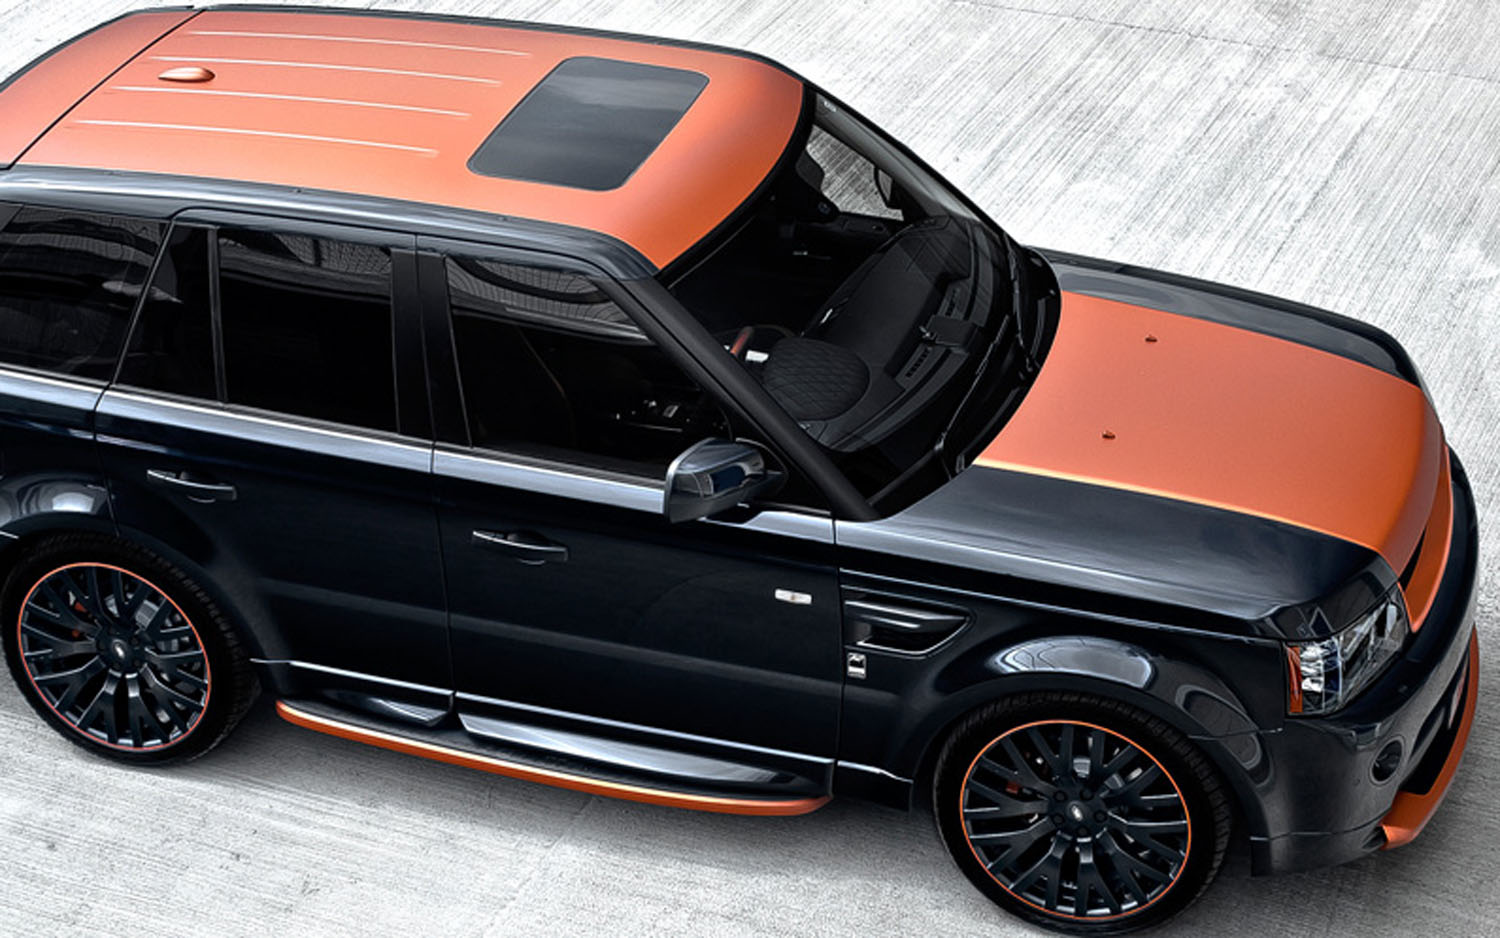 eruption project kahn crafts range rover sport vesuvius. Black Bedroom Furniture Sets. Home Design Ideas